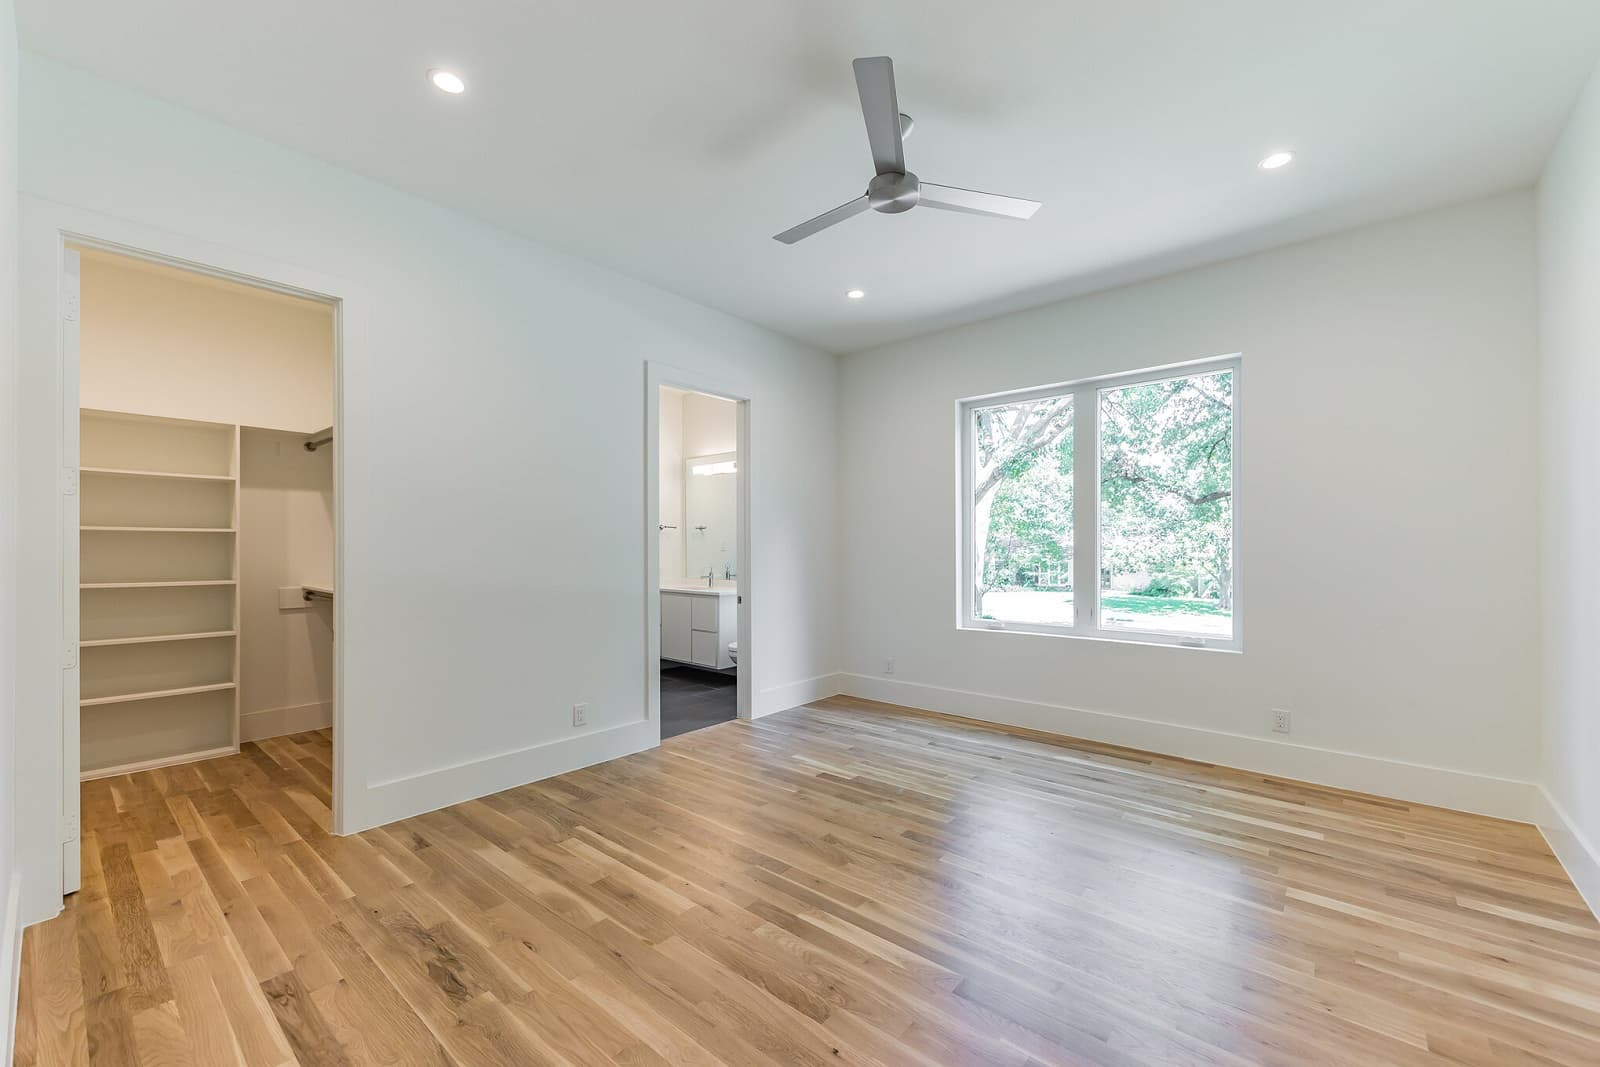 Real Estate Photography in Dallas - Bedroom View